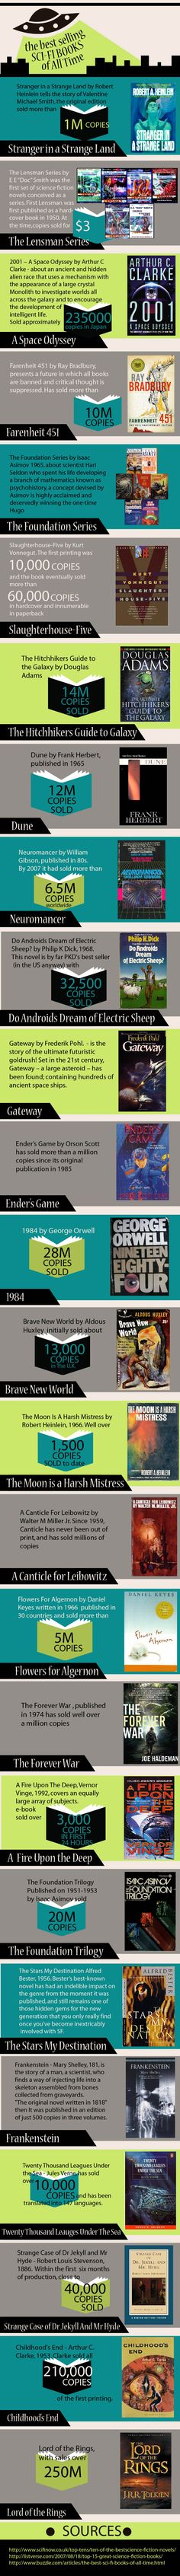 The best selling sci-fi books of all time (infographic)